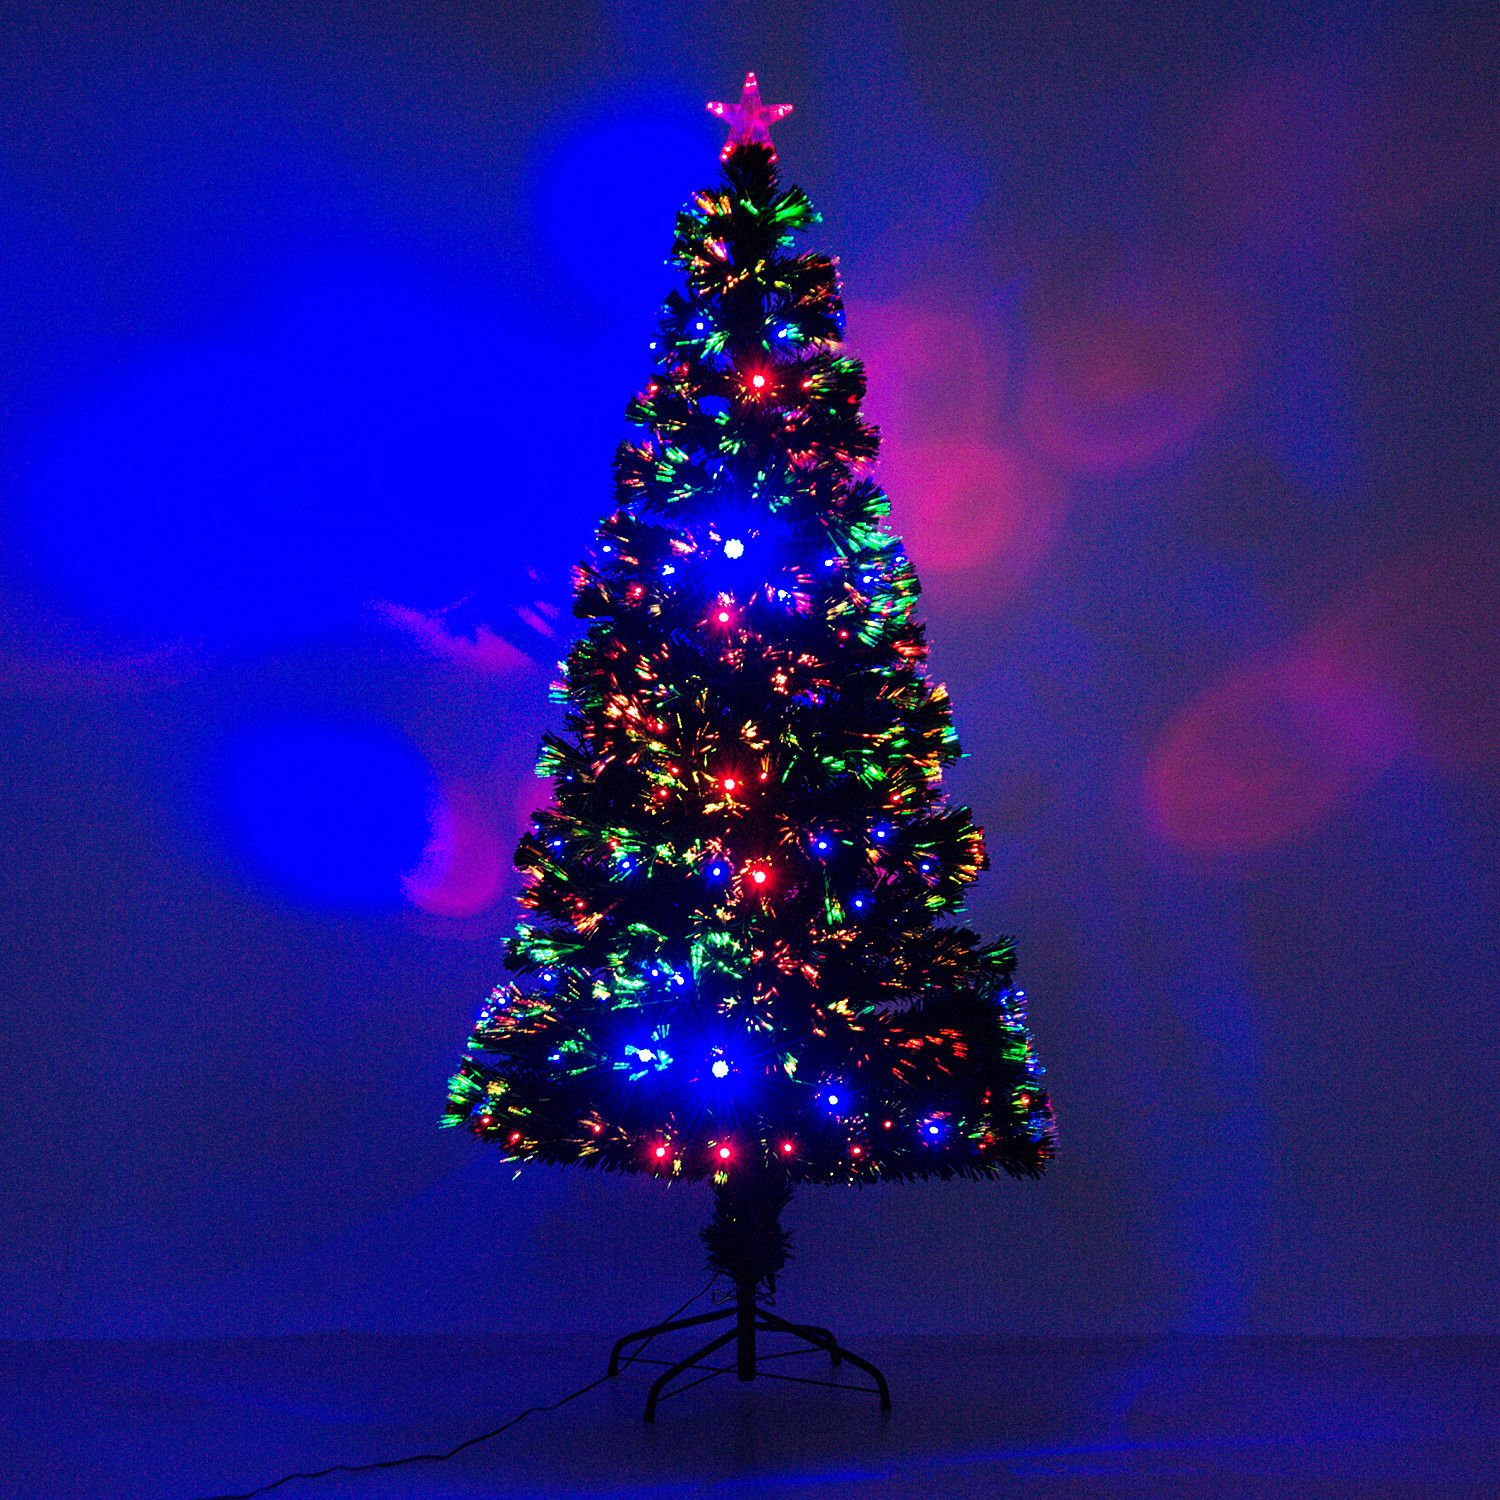 6' Artificial Holiday Fiber Optic / LED Light Up Christmas Tree w/ 8 Light Settings and Stand